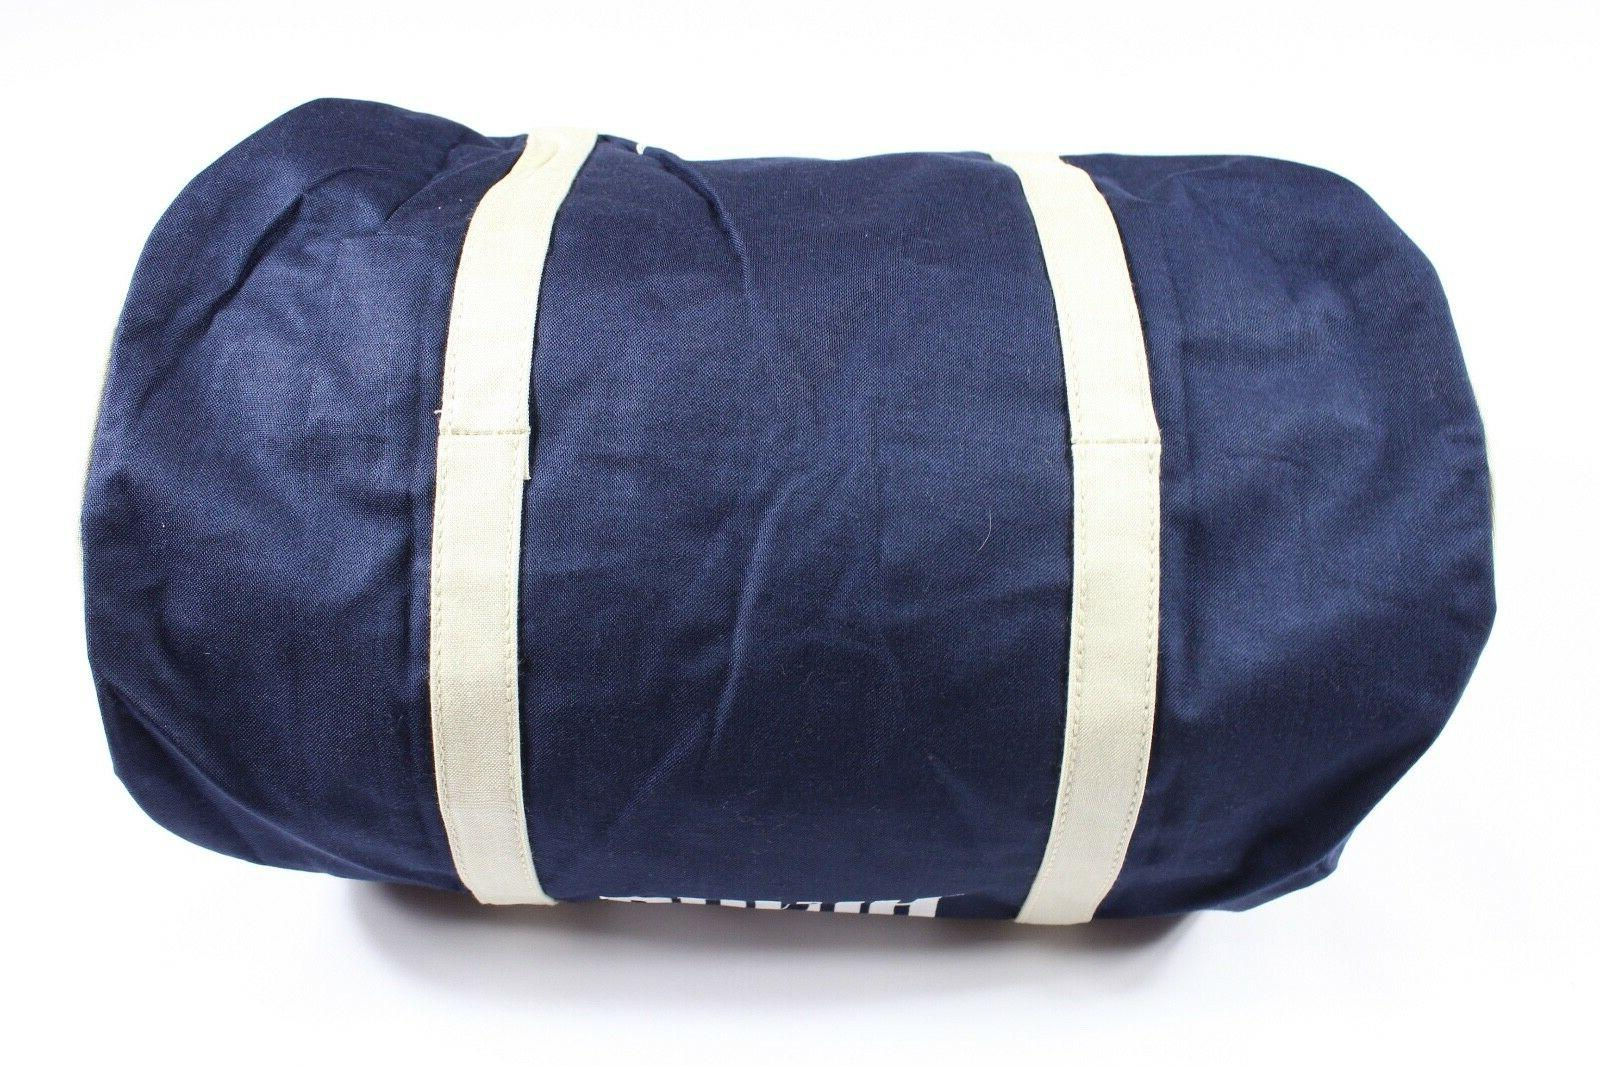 NOS Vintage 90s Puma Spell Out Handled Duffel Gym Bag Carry